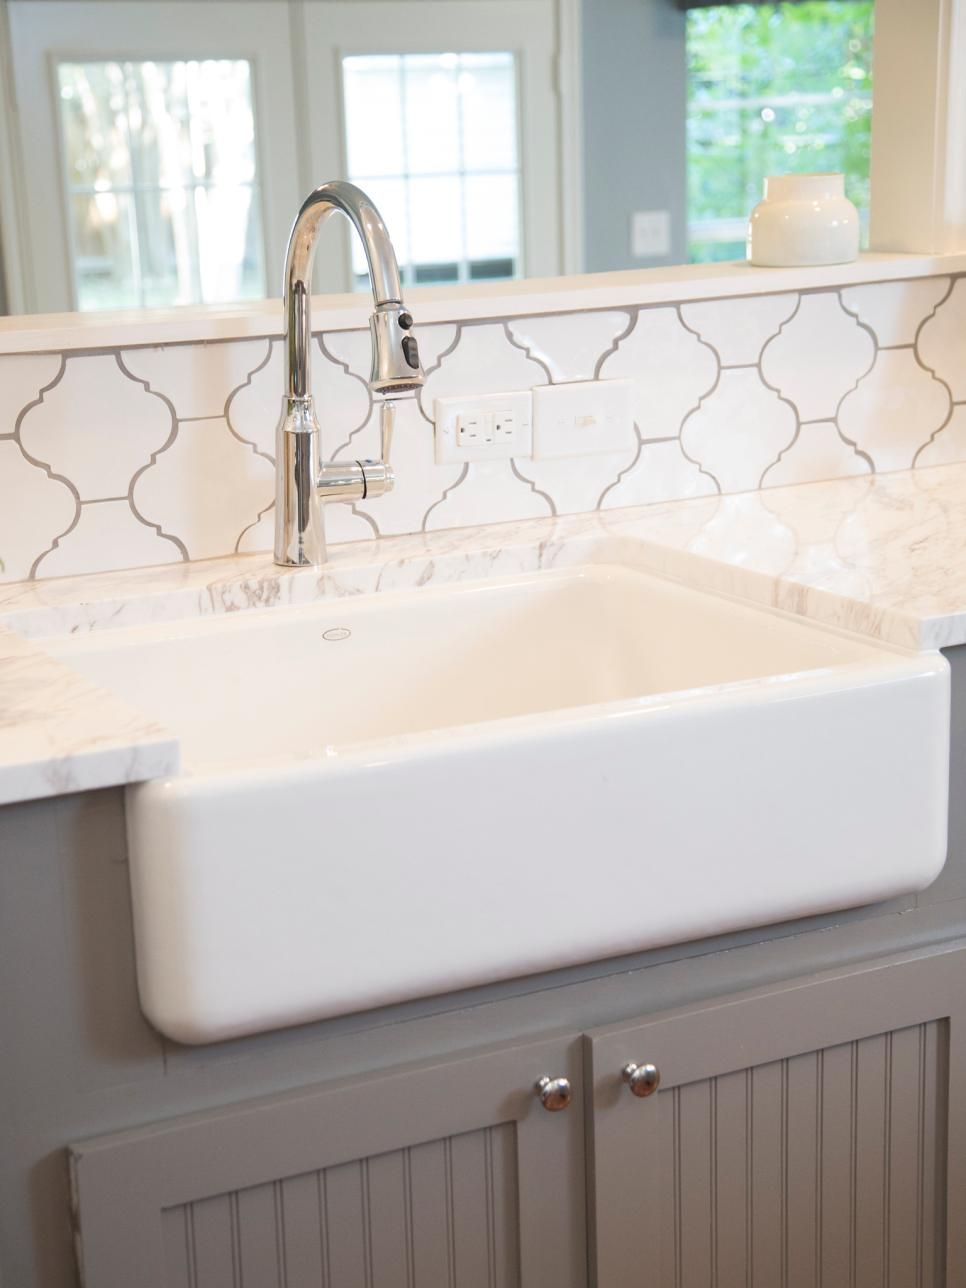 Fixer upper marble kitchen - A Moroccan Tile Backsplash Carrara Marble Countertops And A Farmhouse Sink Add Charming Character To